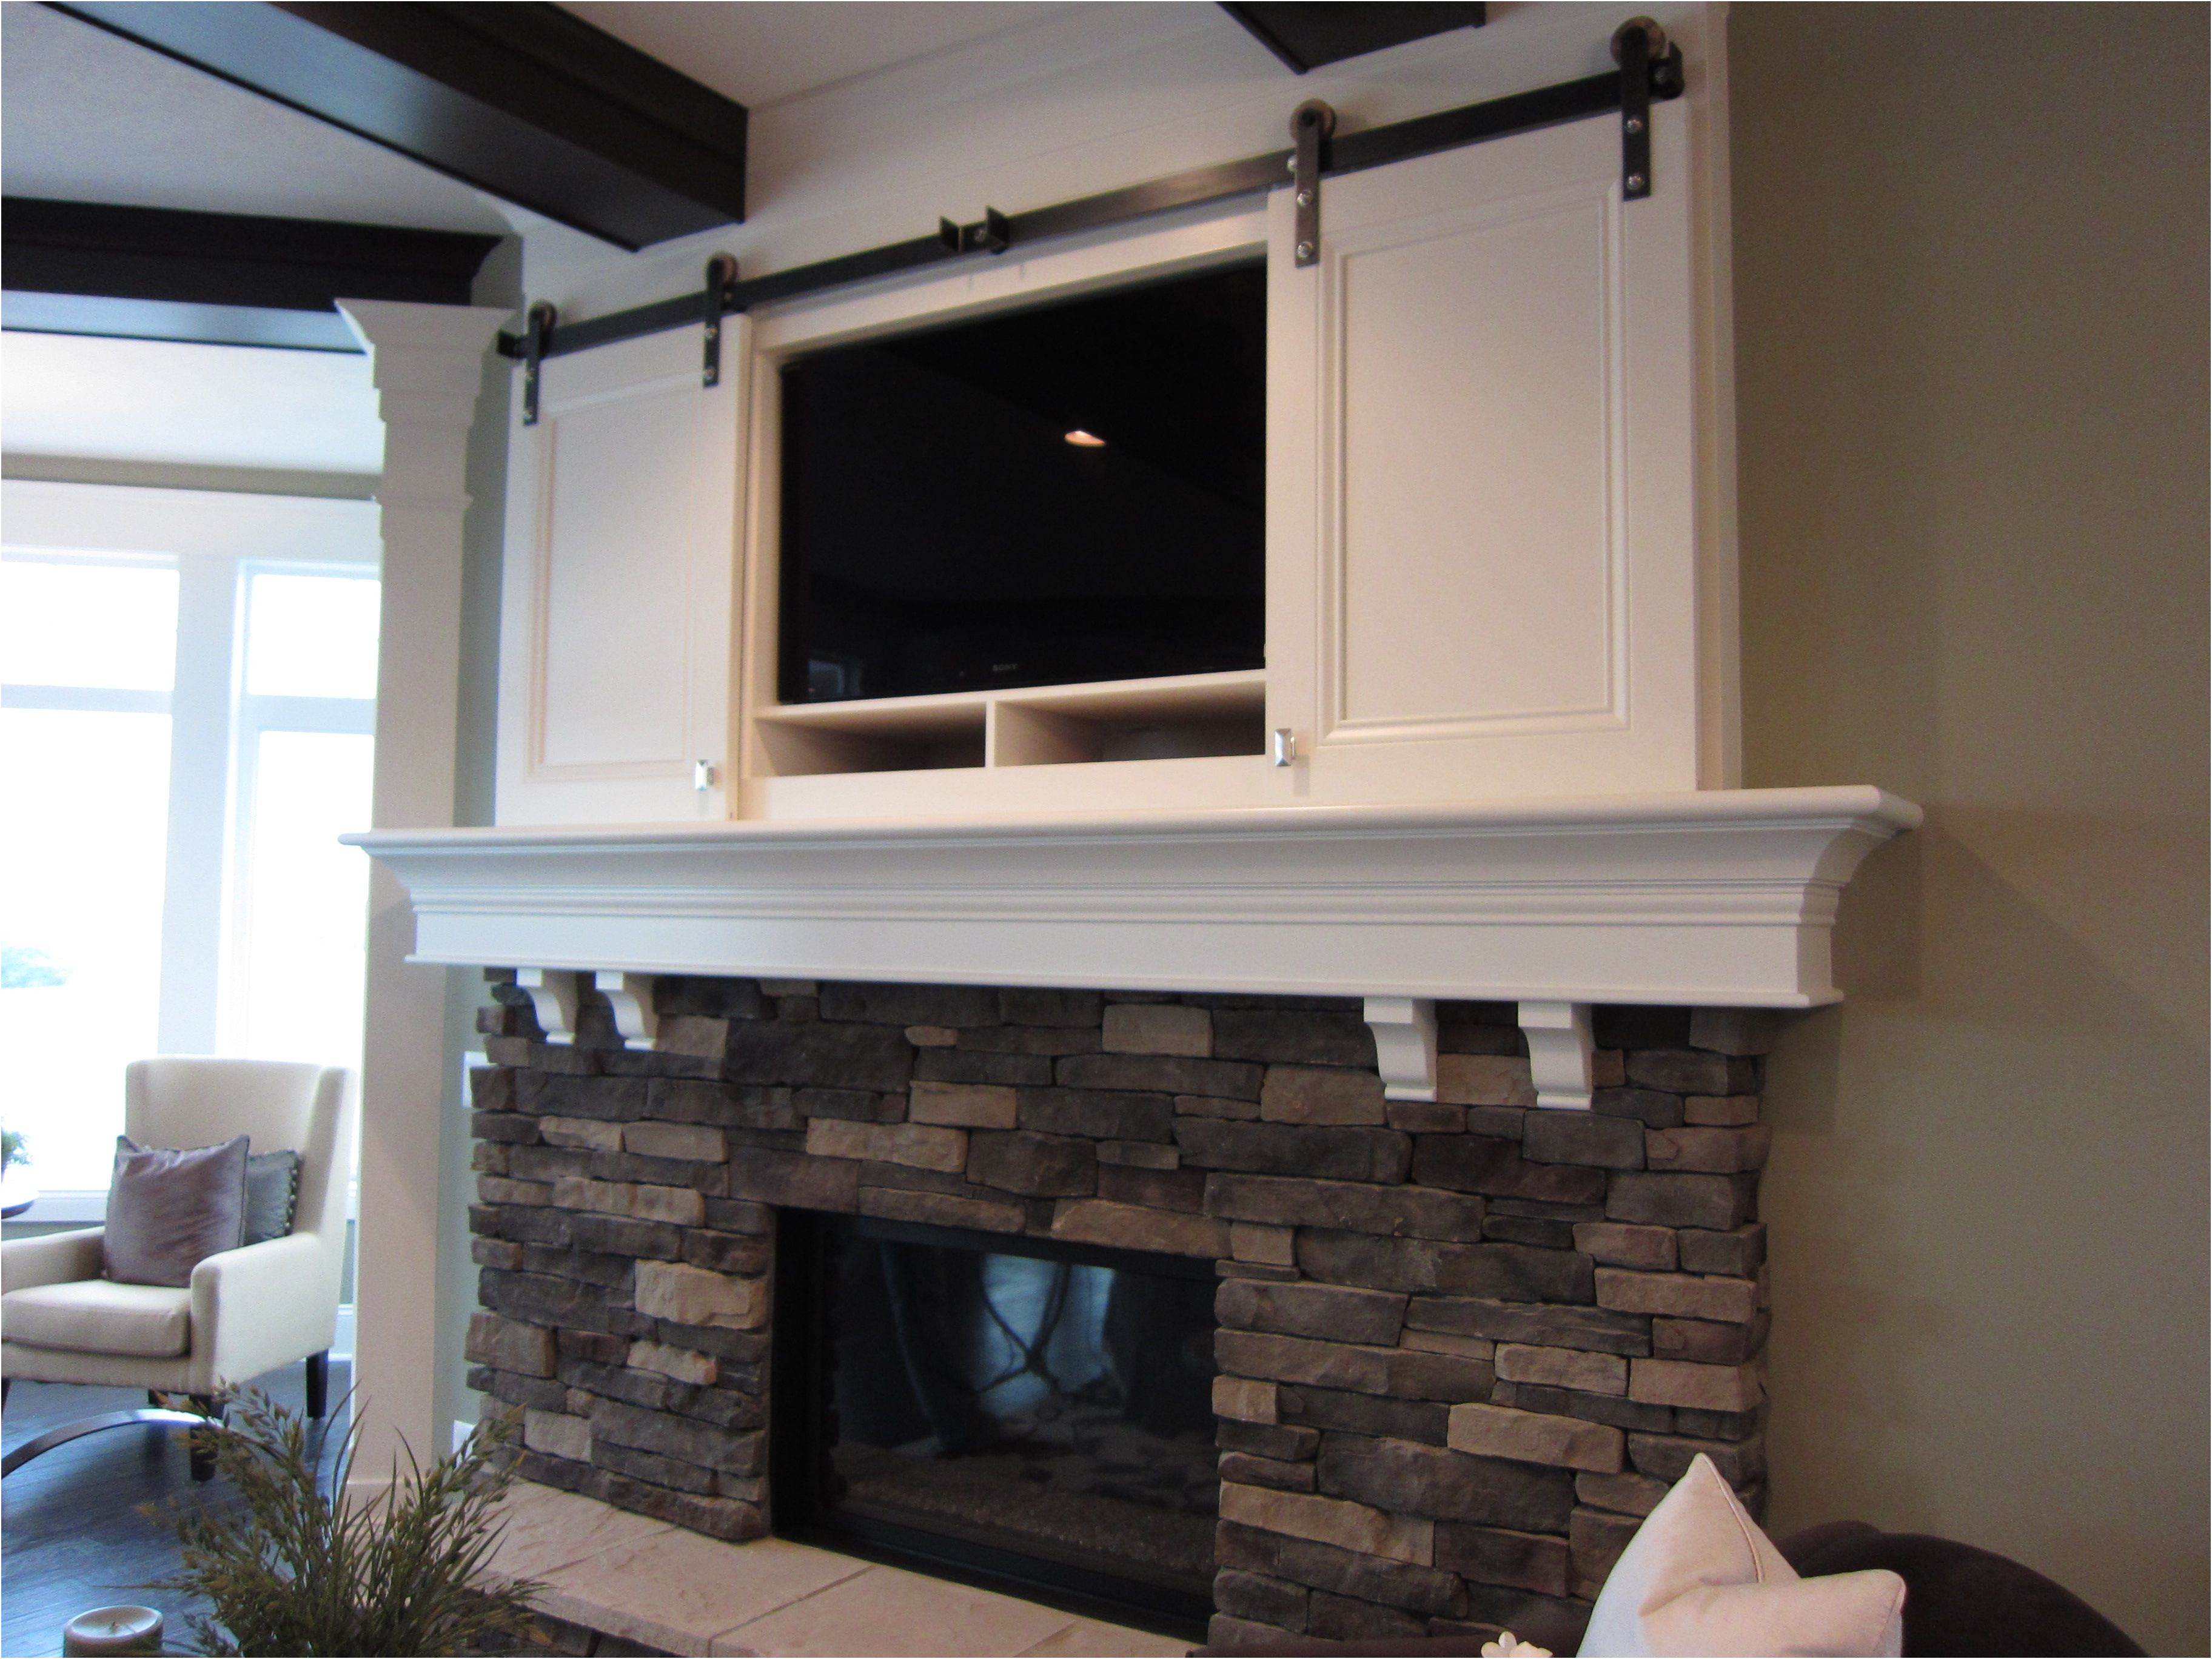 Tv Over the Fireplace Ideas Inspirational Fireplace Tv Mantel Ideas Best 25 Tv Above Fireplace Ideas